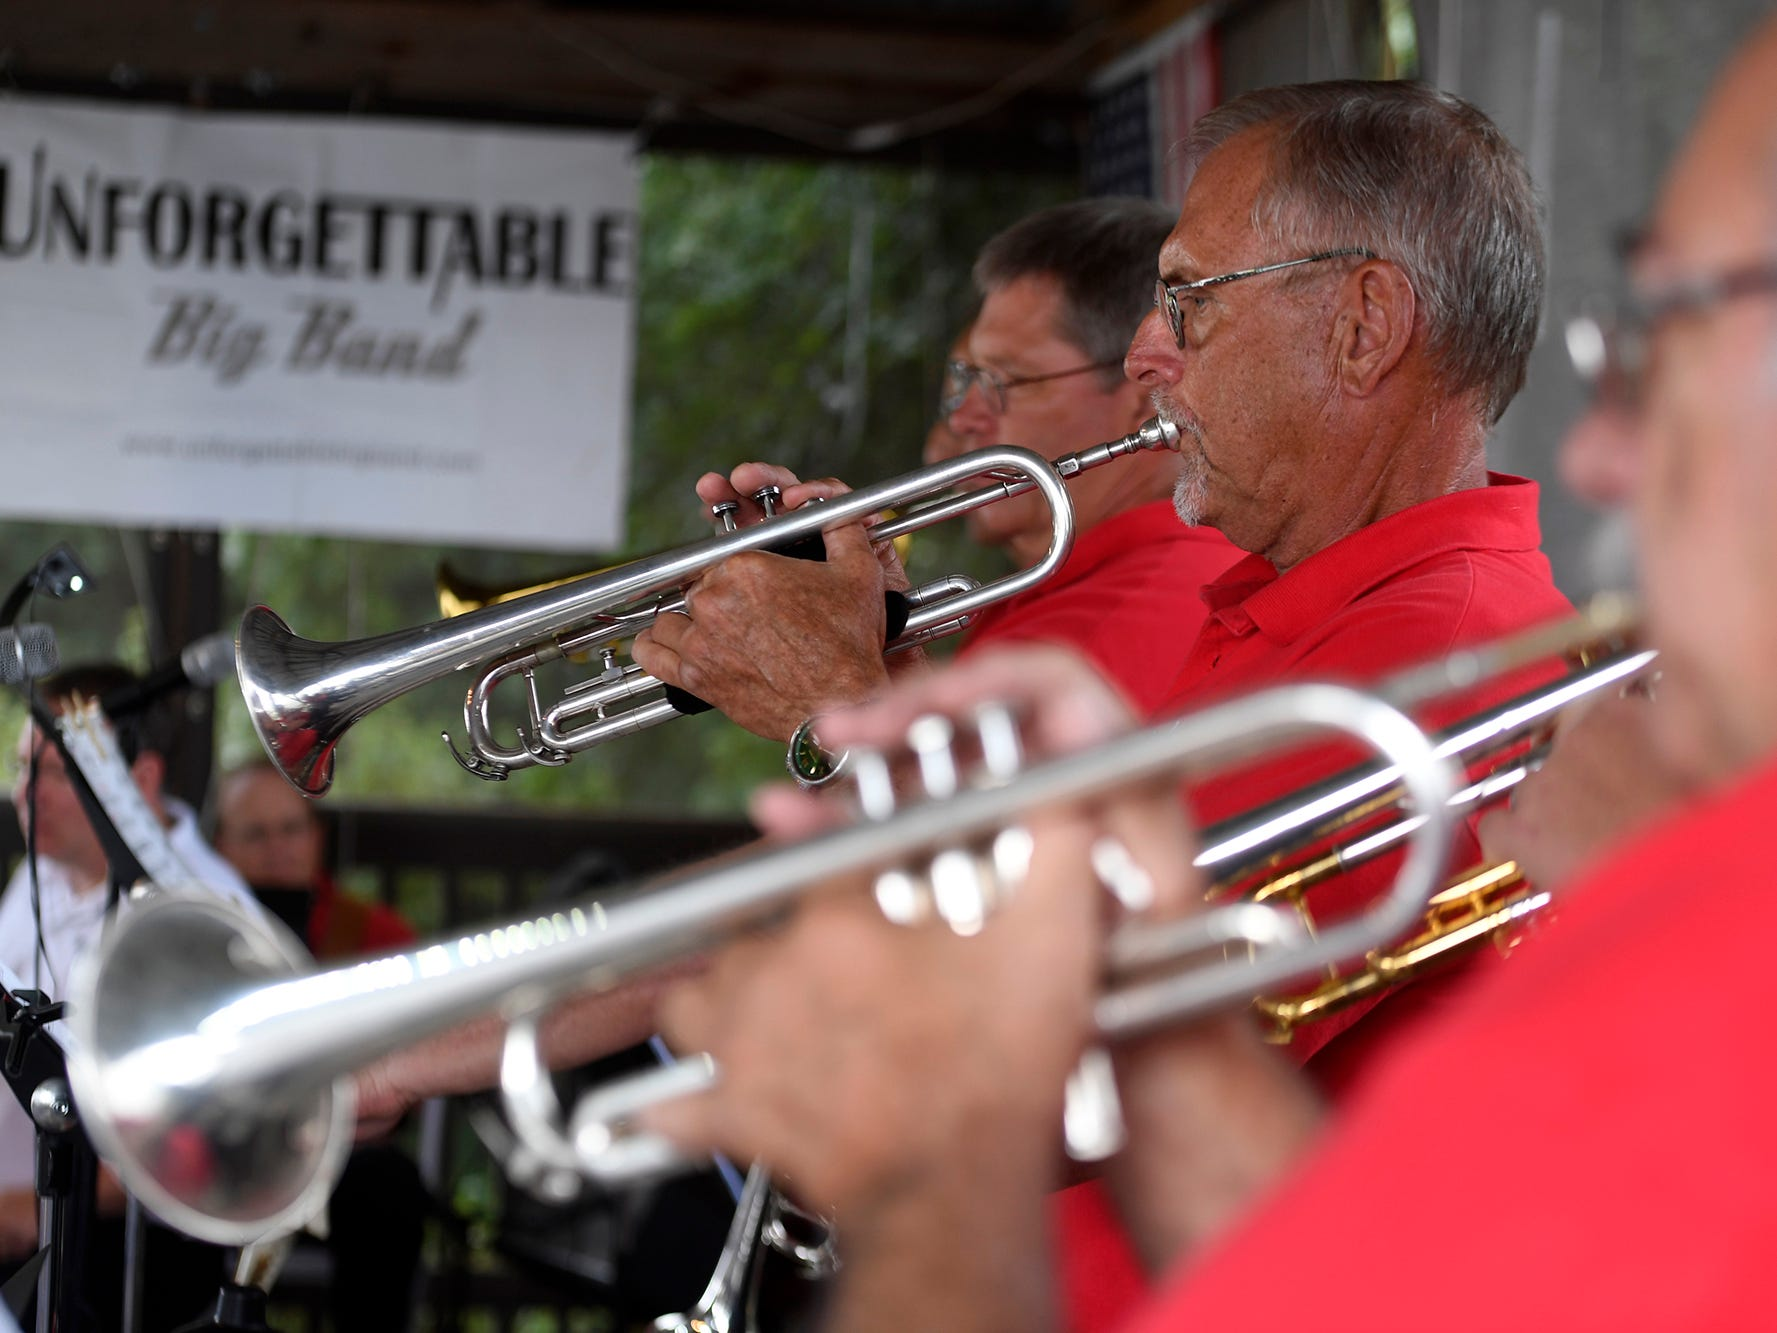 York's Unforgettable Big Band trumpet line, including Randy Gutacker, center, performs at Brown's Orchard & Farm Market, Sunday, August 18,  2018. John A. Pavoncello photo